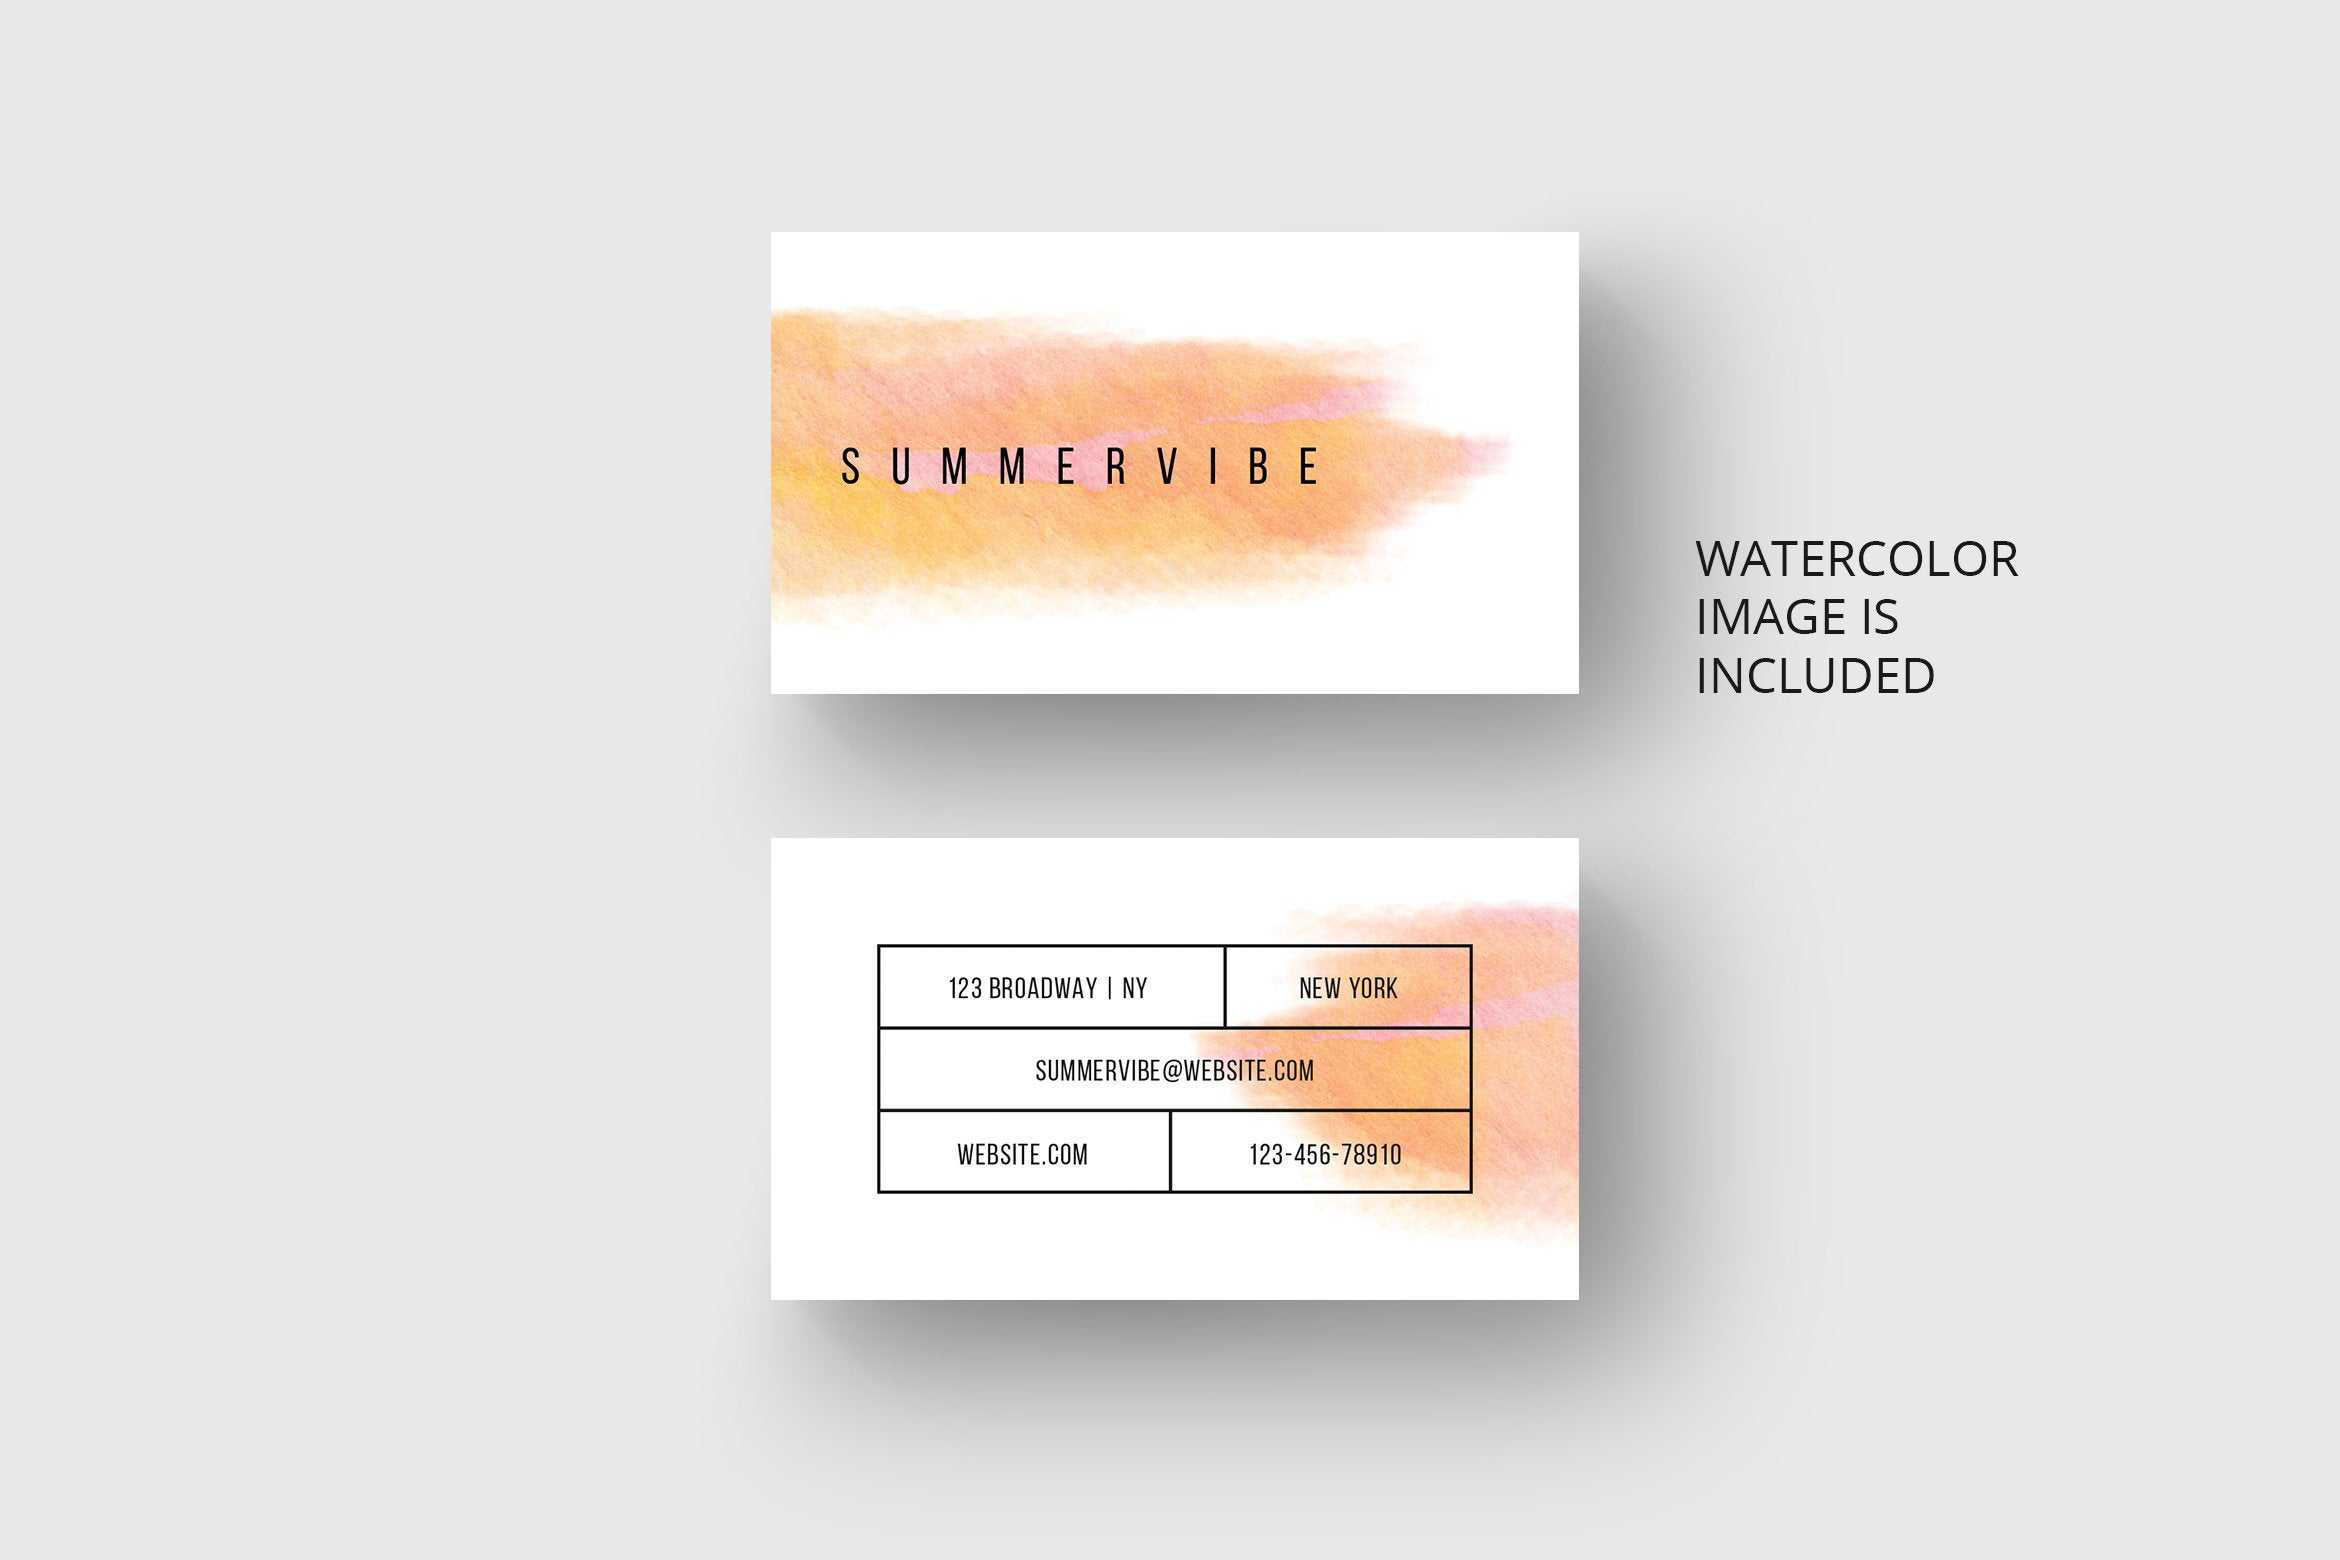 Business Card Template With Orange Watercolor * Eu & Us Size * Photoshop Within Business Card Template Size Photoshop